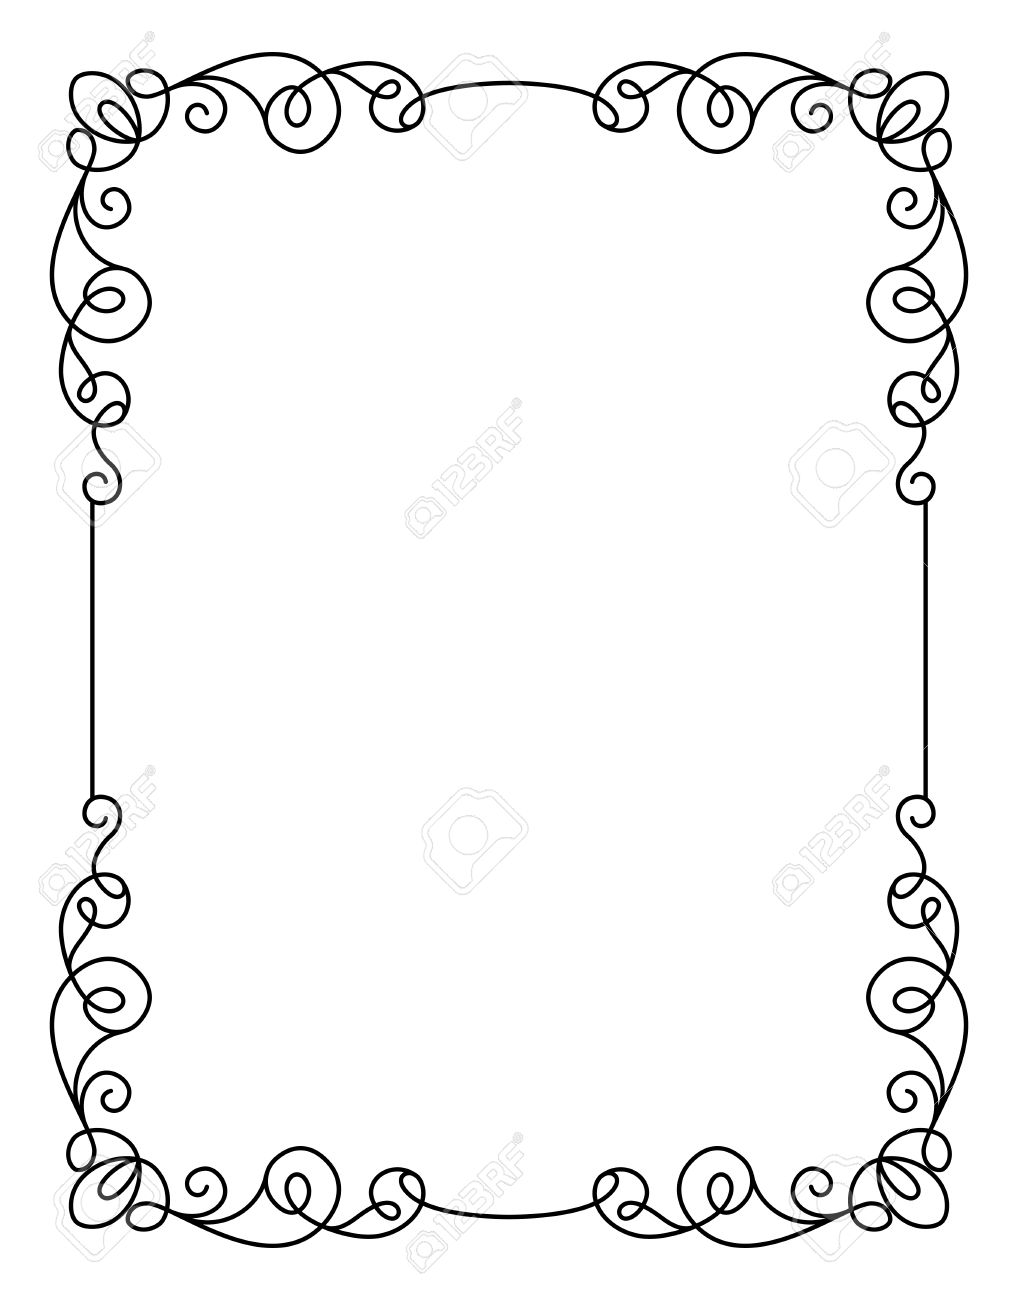 Calligraphic Rectangle Frame Simple Ornament Decorative Design Element In Retro Style Certificate